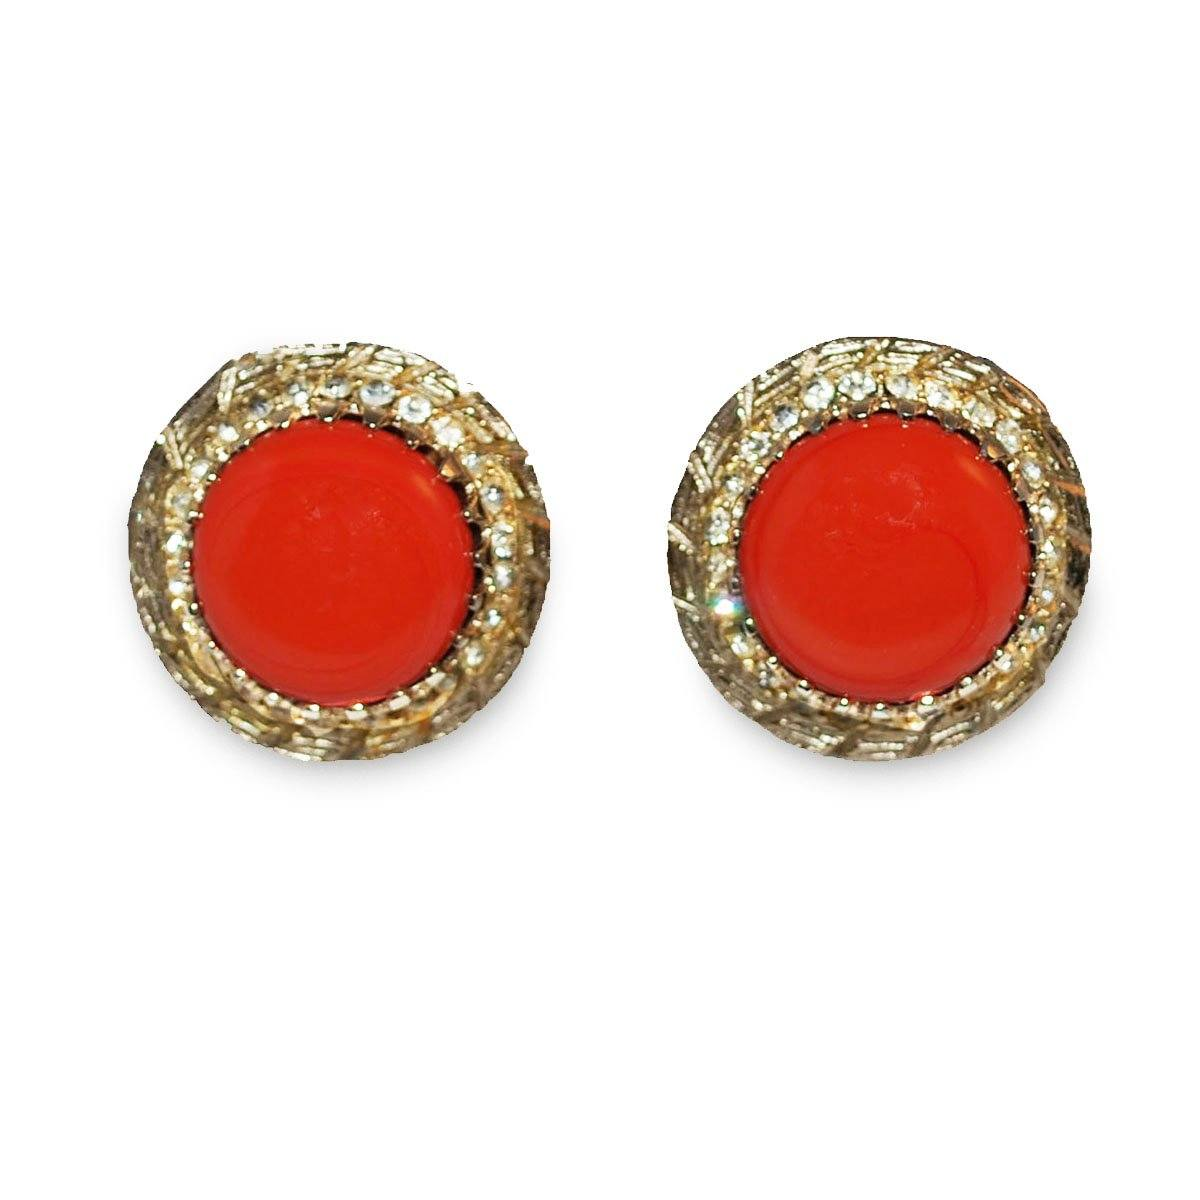 1950s Rhinestone & Orange Cabochon Button Earrings 3 by Bergere